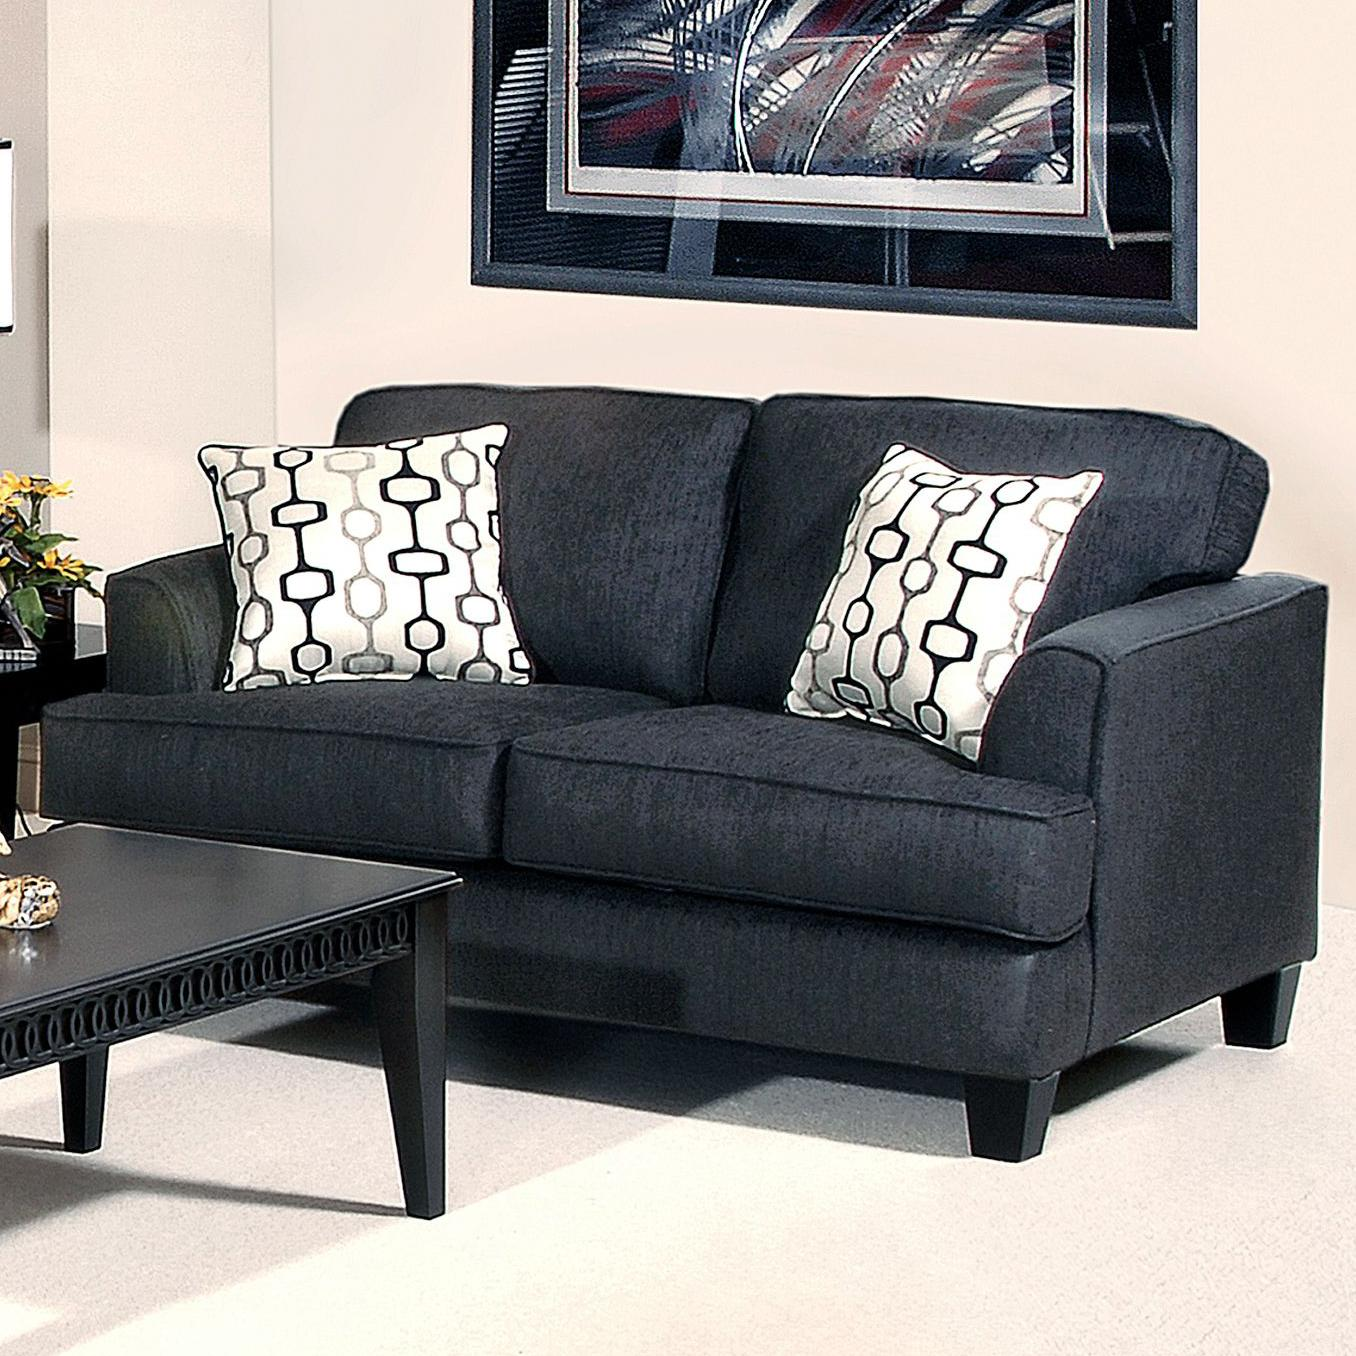 5600 Transitional Love Seat by Hughes Furniture at Lapeer Furniture & Mattress Center